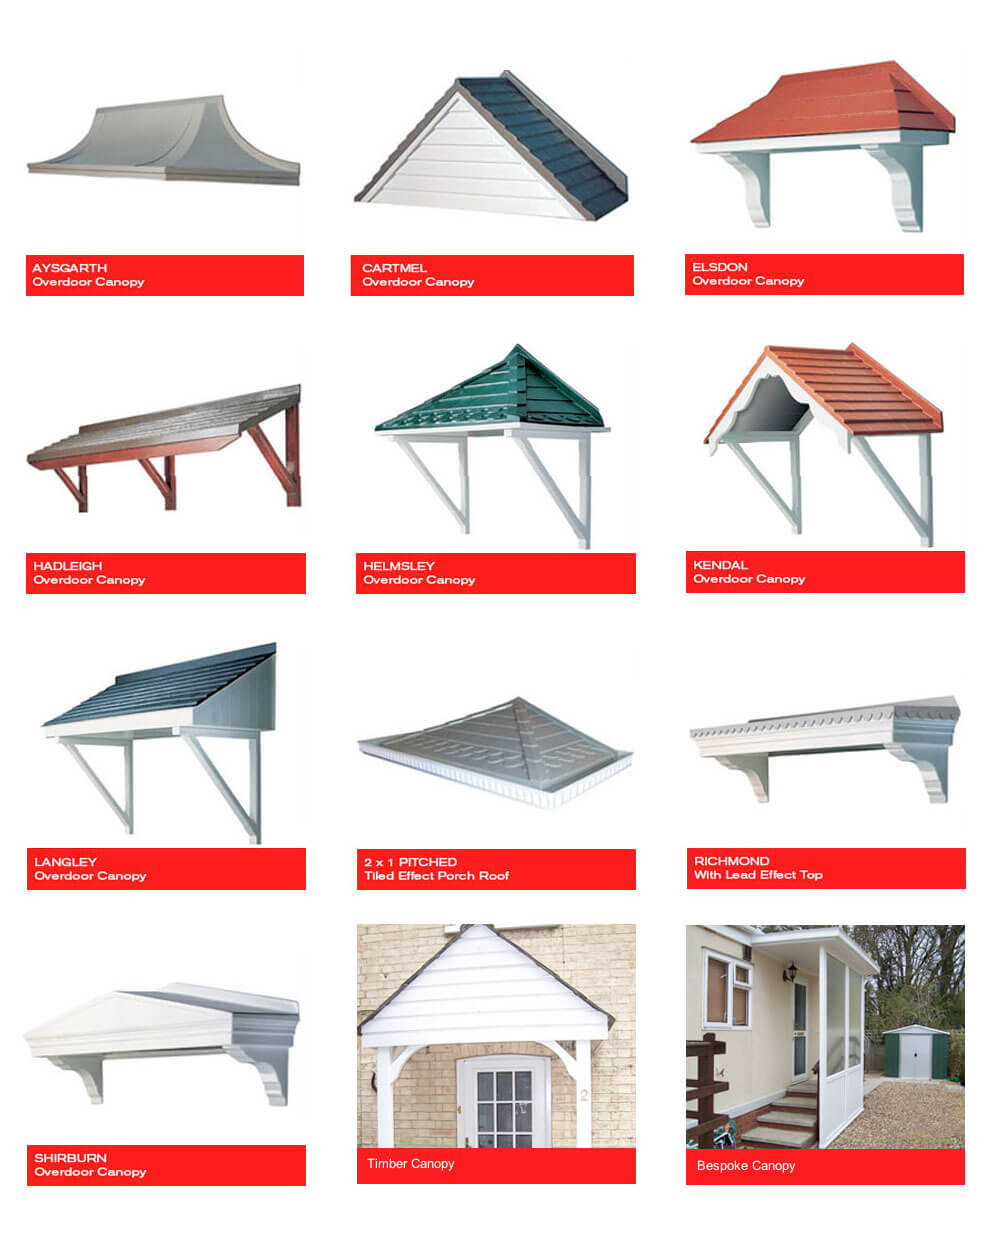 Doors_Gallery_Canopies